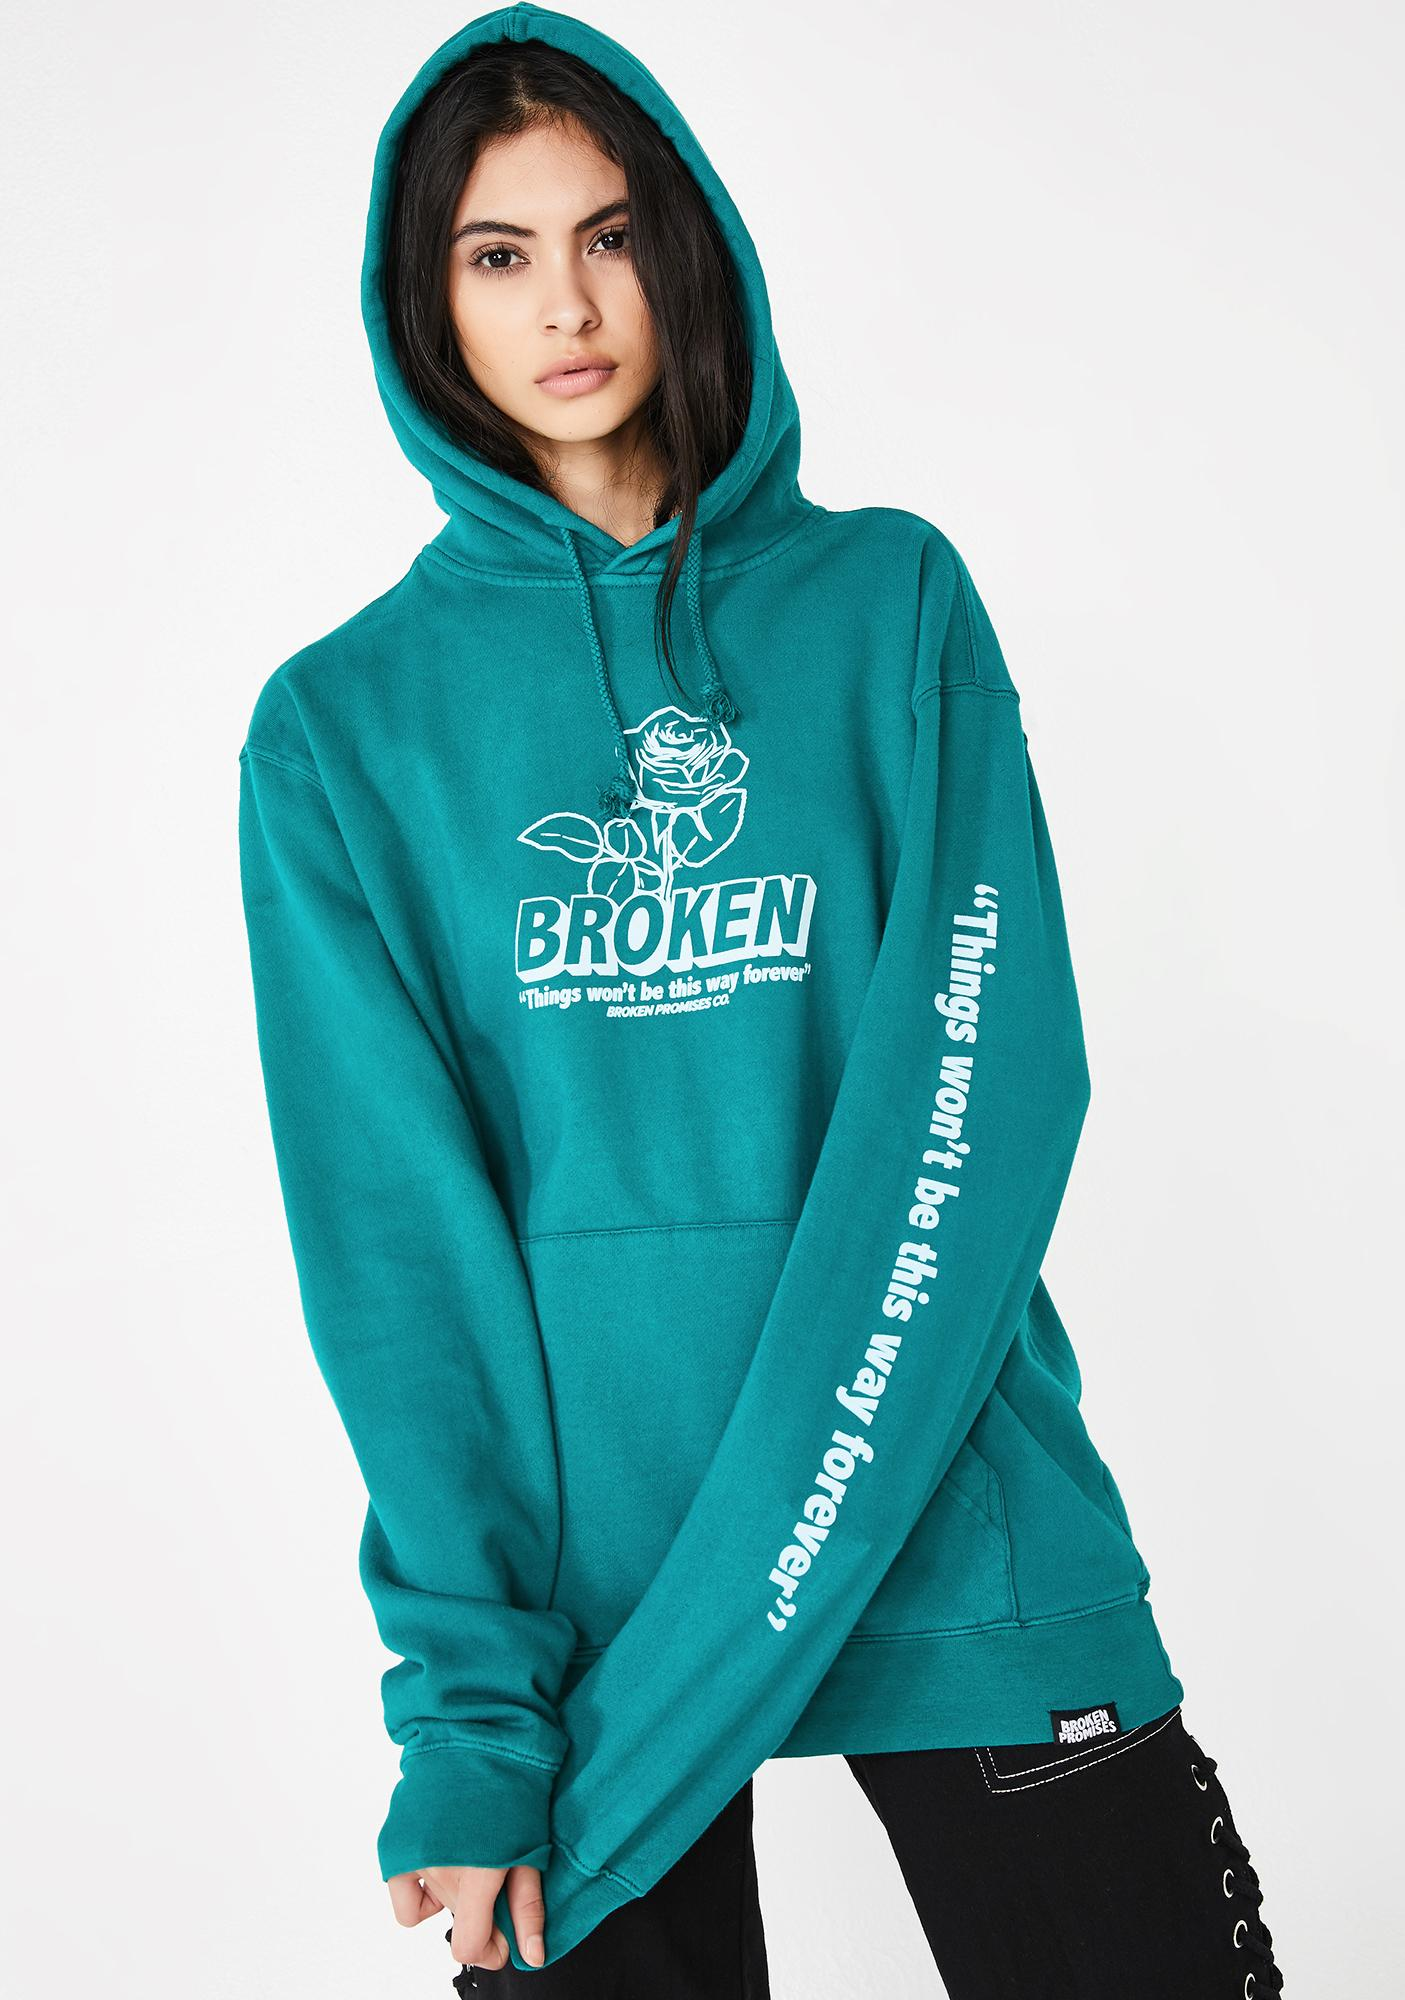 BROKEN PROMISES CO Evermore Overdyed Graphic Hoodie